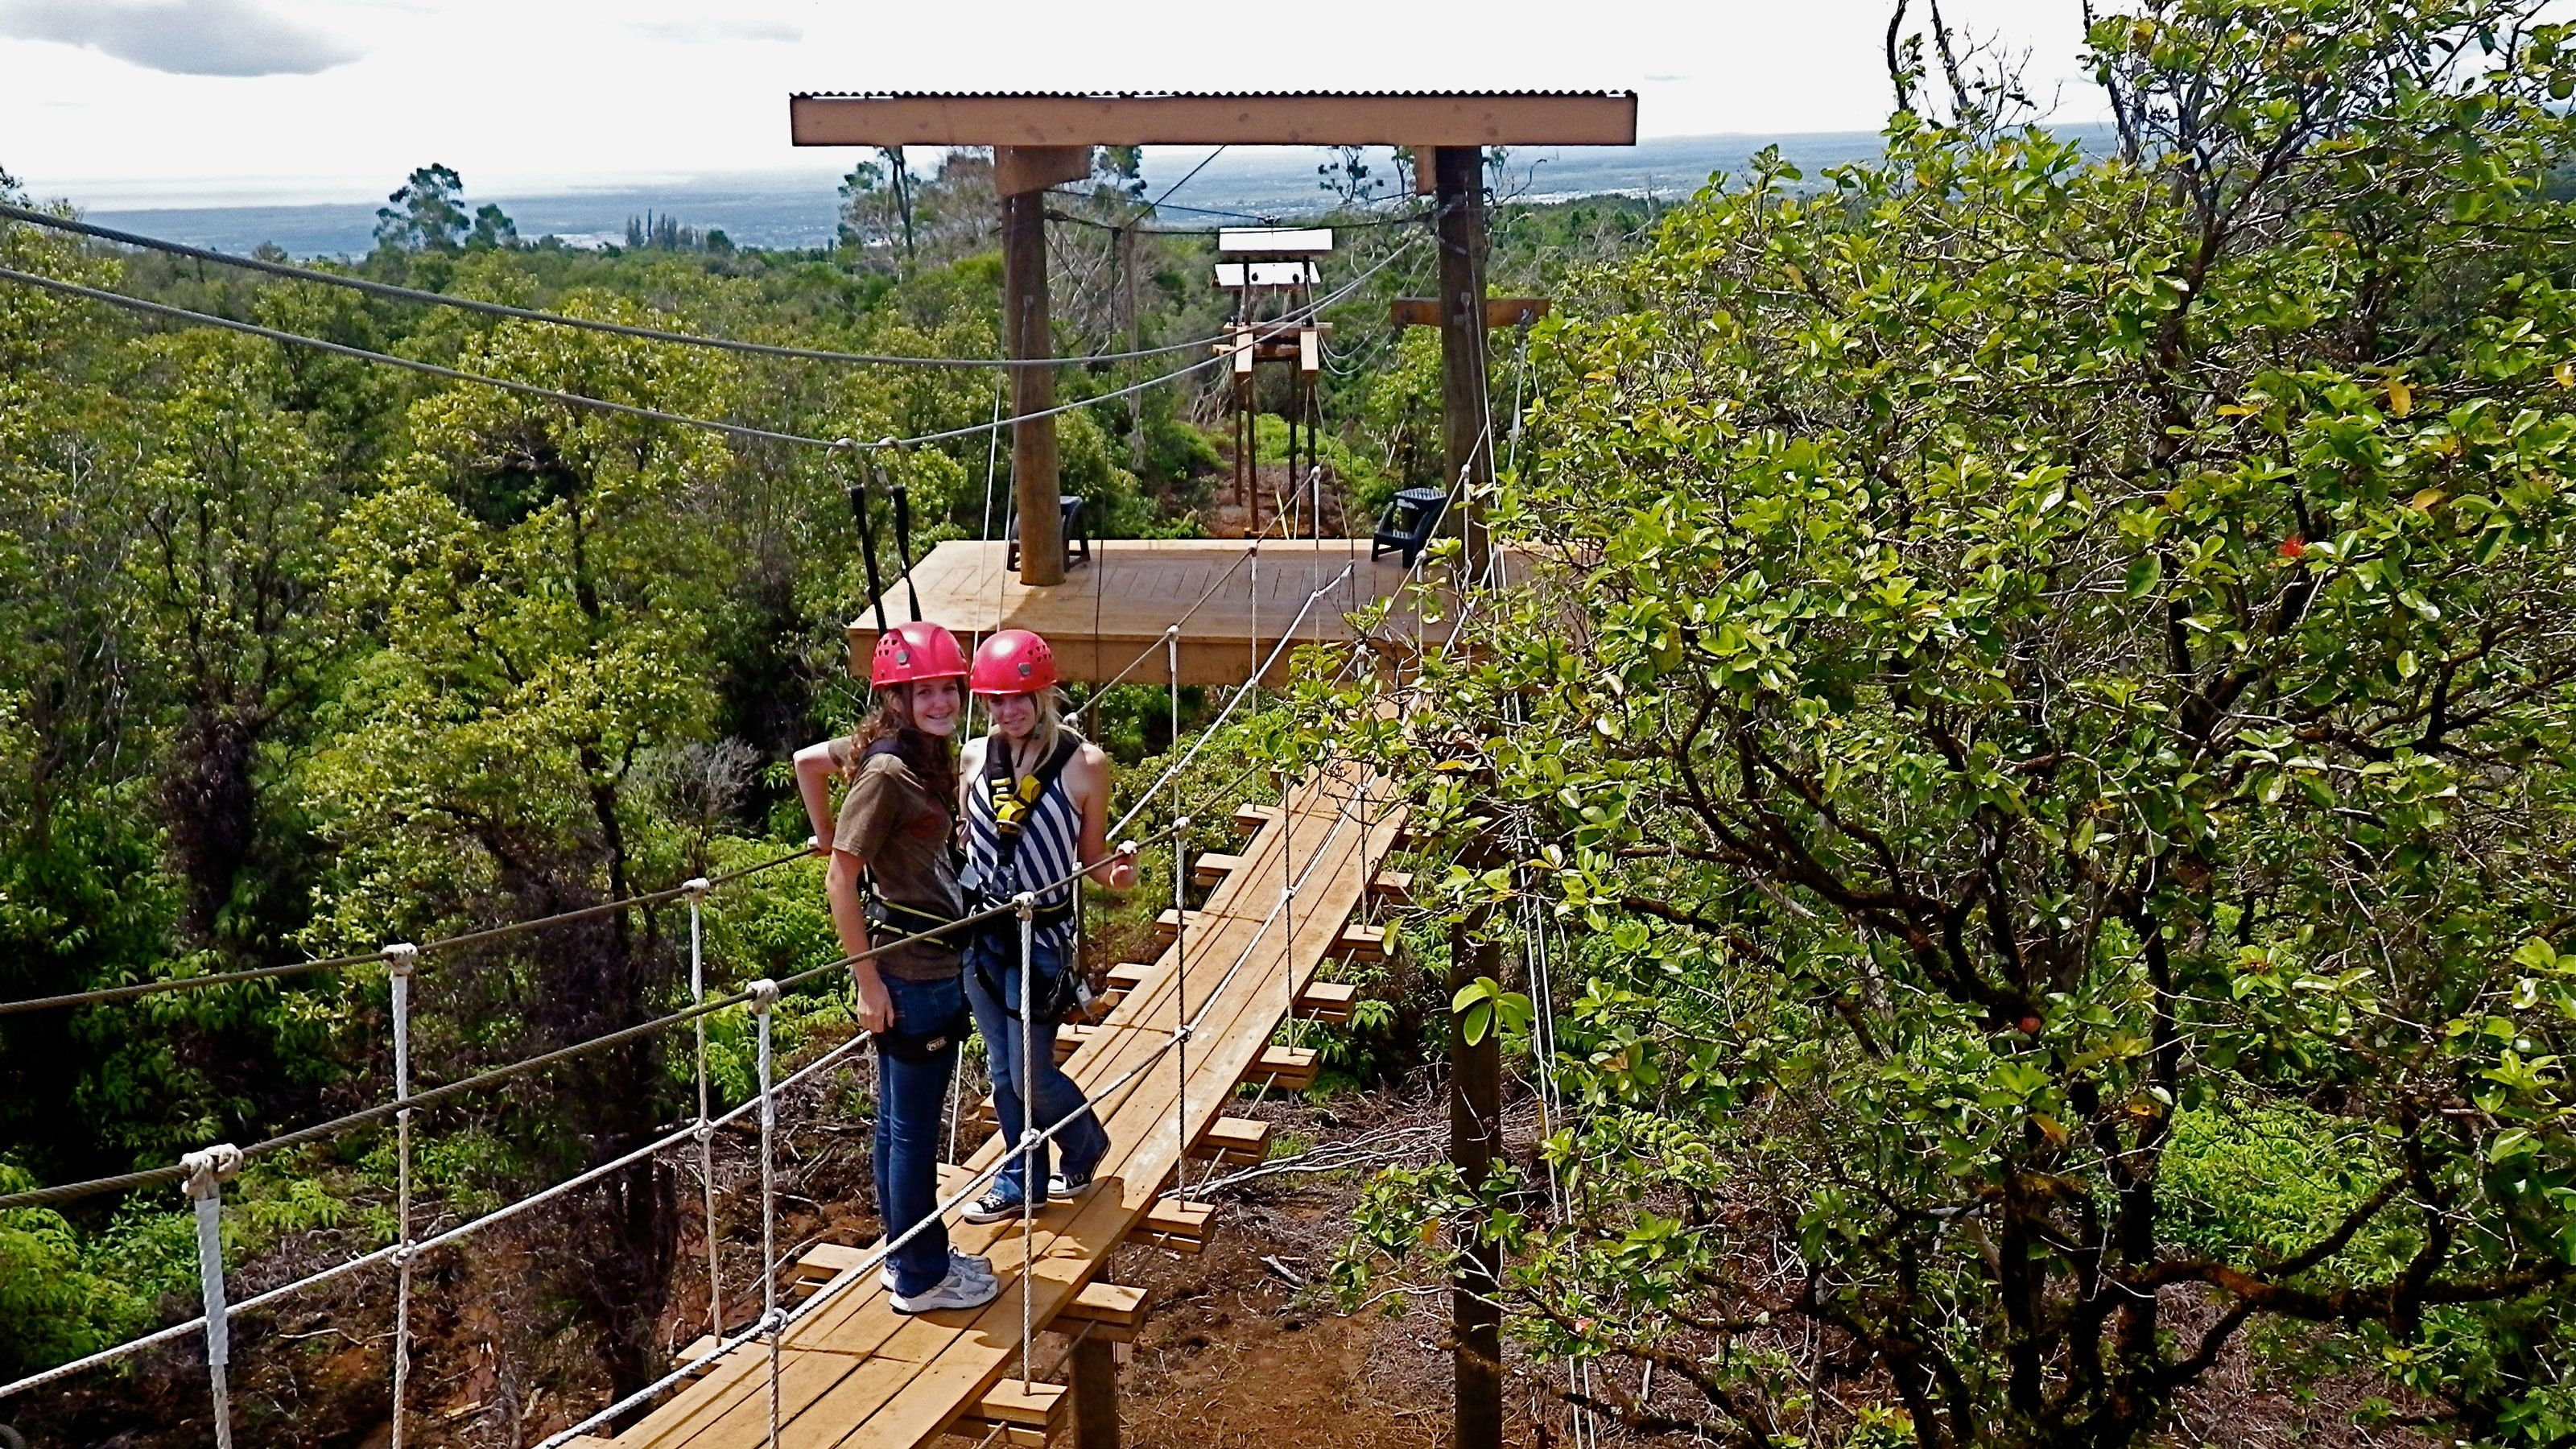 two young ladies on a bridge to the ziplining station in hawaii